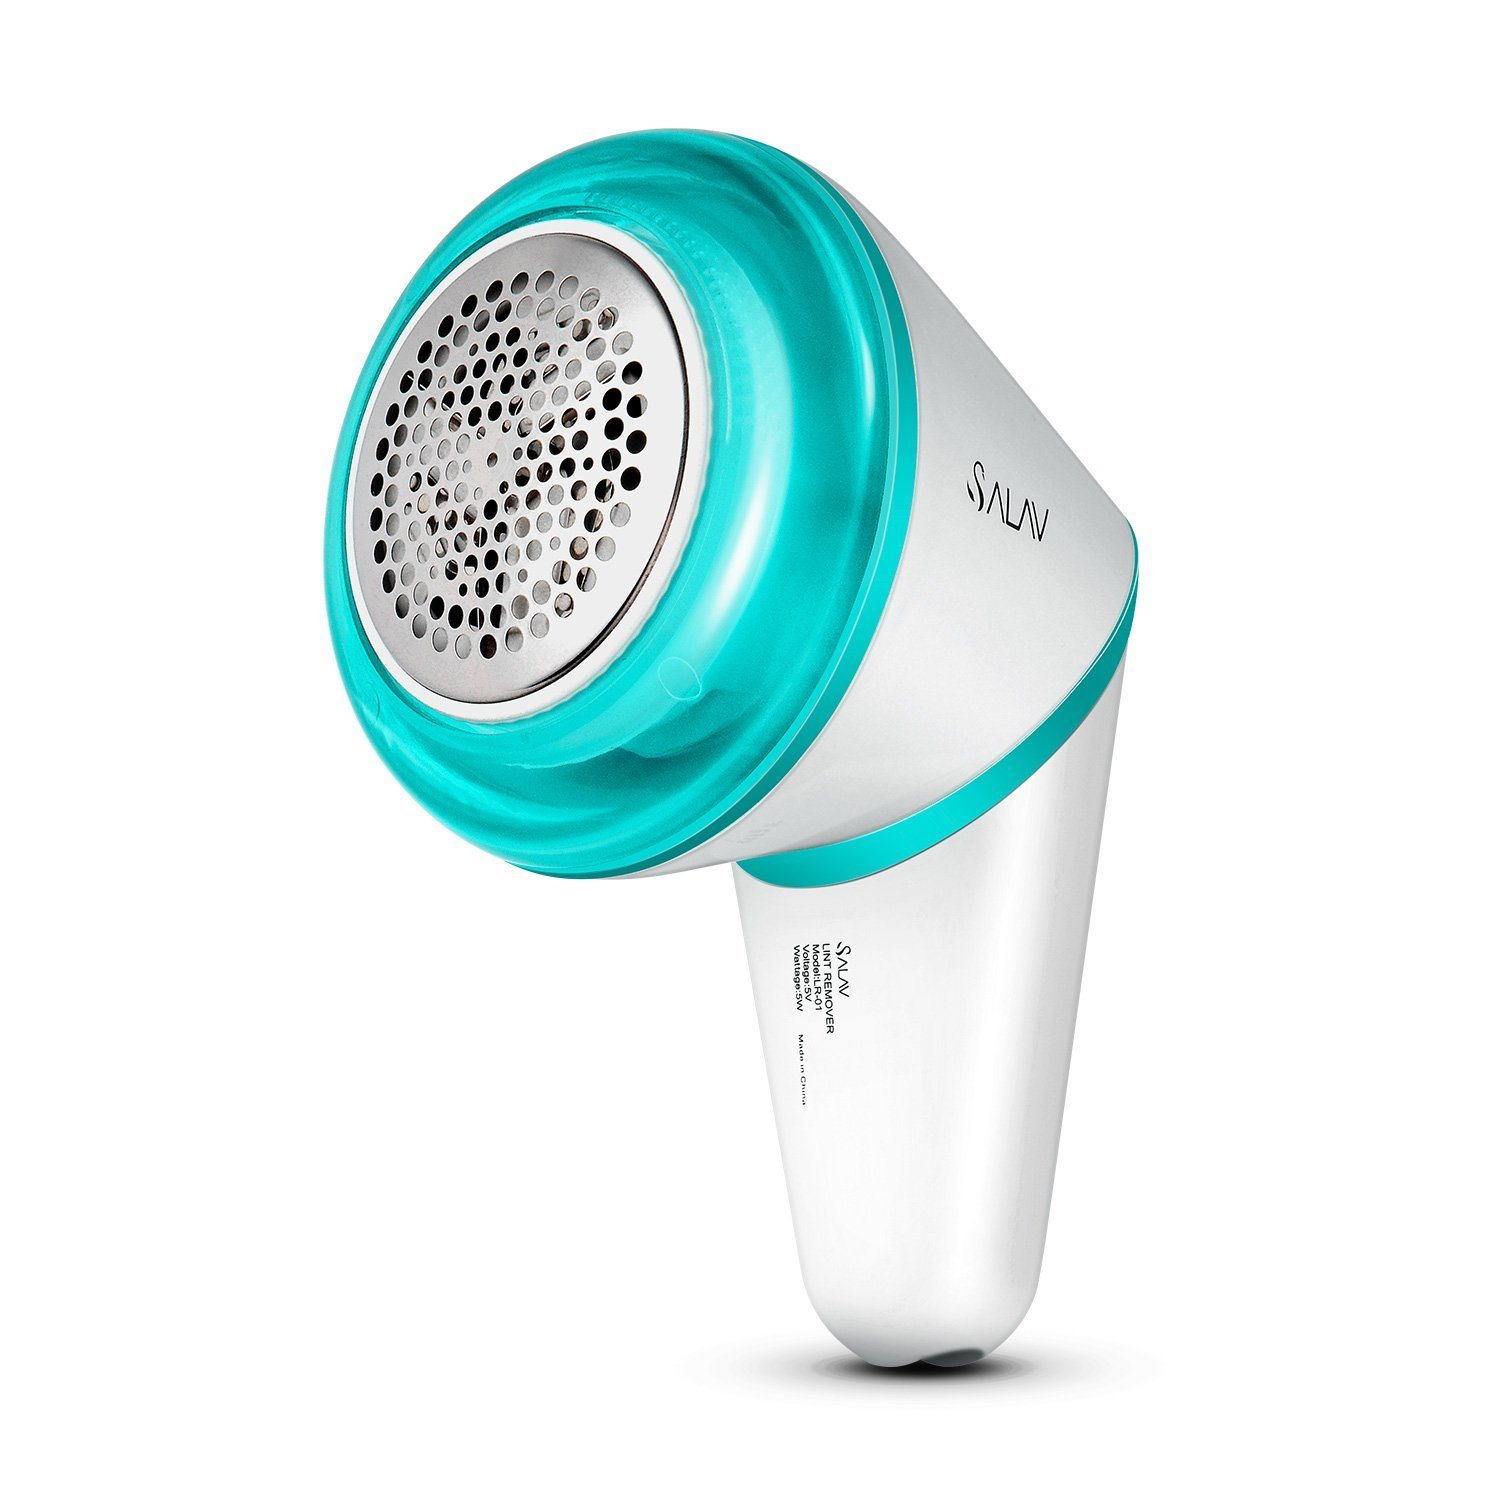 SALAV Lint Shaver Fabric Remover Batteryfree USB Rechargeable Cordless Portable with Brush for Home and Travel, Ice Blue, LR-01